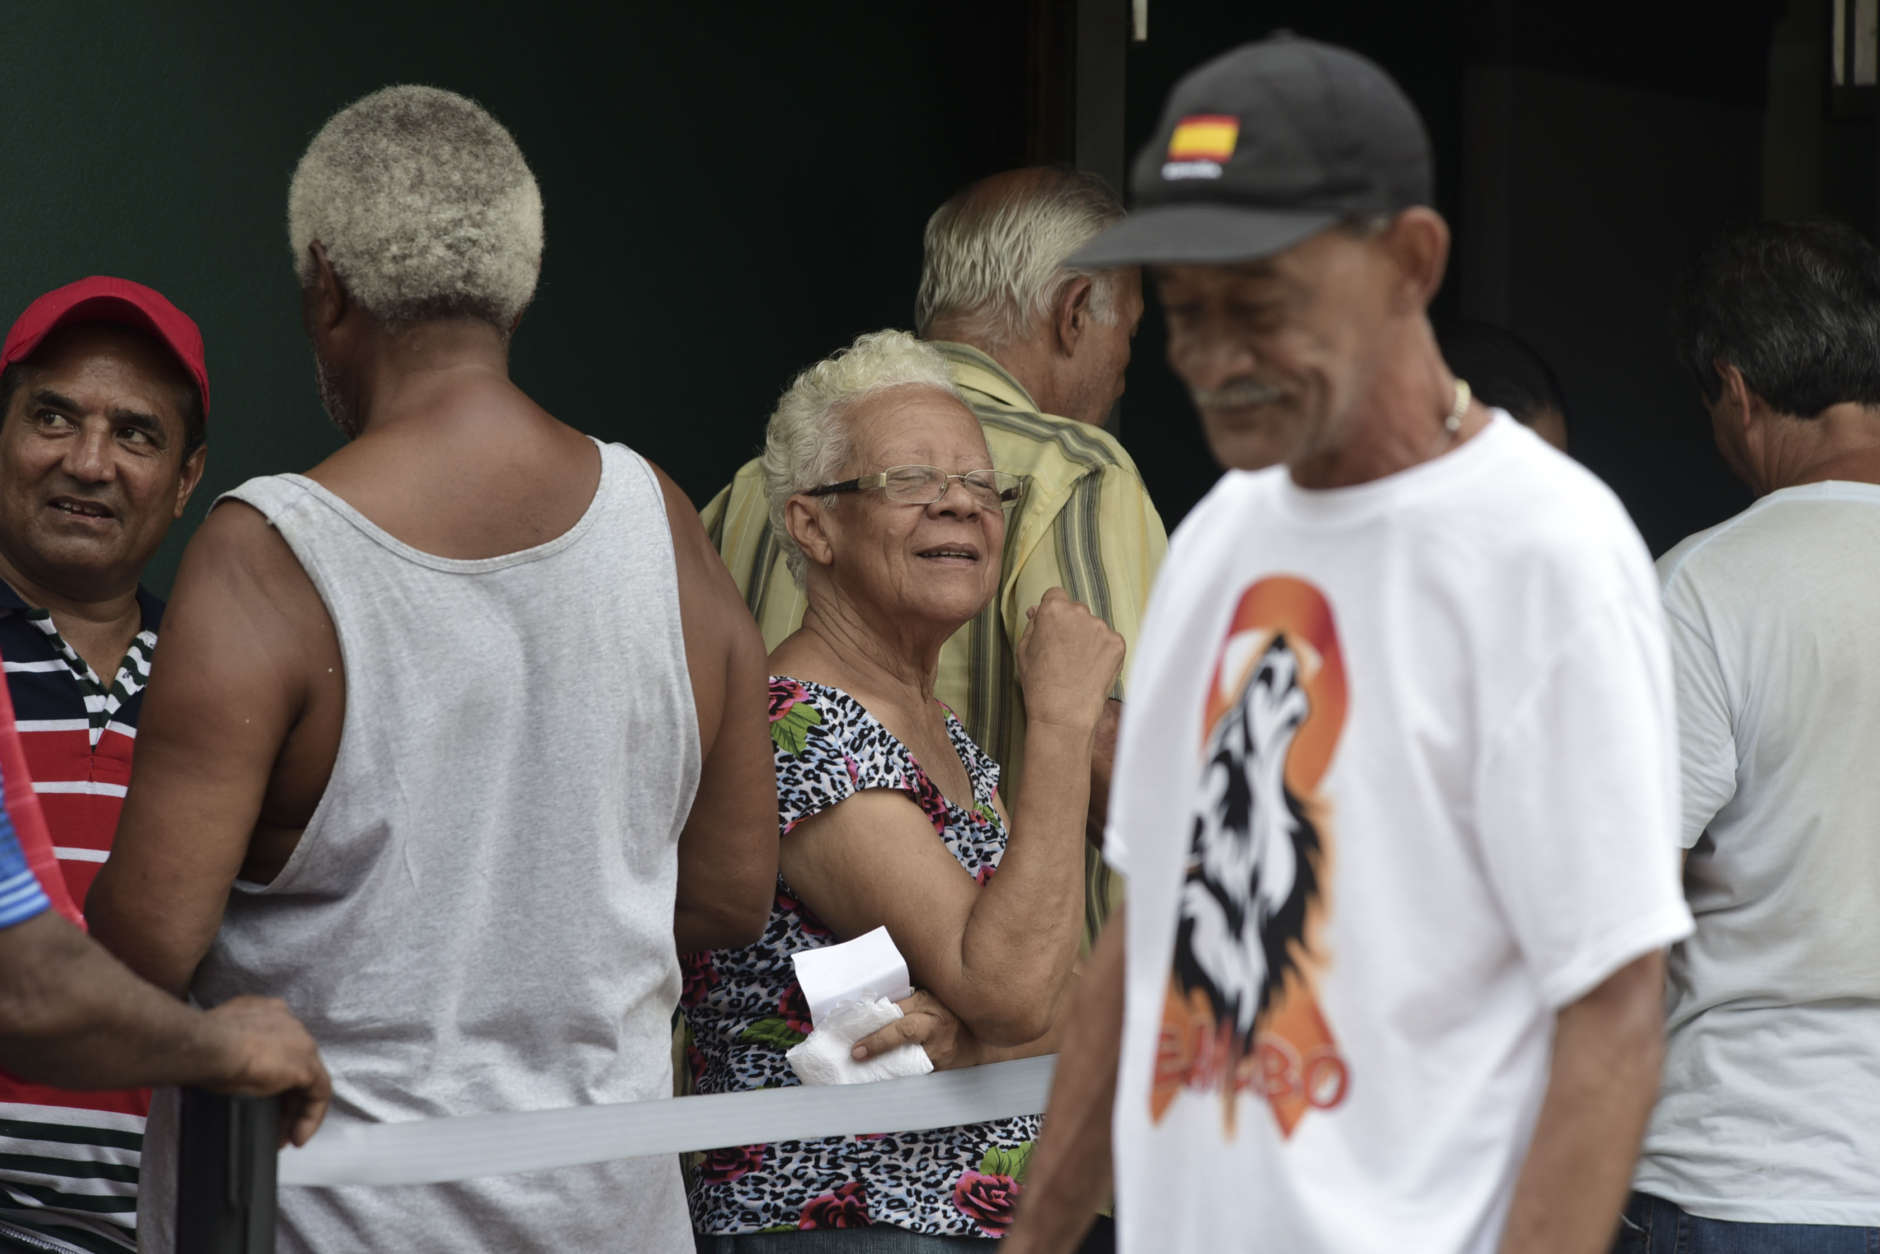 Clients of Coopaca Coperative wait in line to withdraw cash from their accounts after the passage of Hurricane Maria a week ago, in Catano, Puerto Rico, Wednesday, Sept. 27, 2017. The cooperative only granted 200 turns to remove a maximum of one hundred dollars per customer. Banks are either closed, on limited hours or are short on cash and many people can't go back to work. It's compounding what is already a difficult situation on the island. (AP Photo/Carlos Giusti)